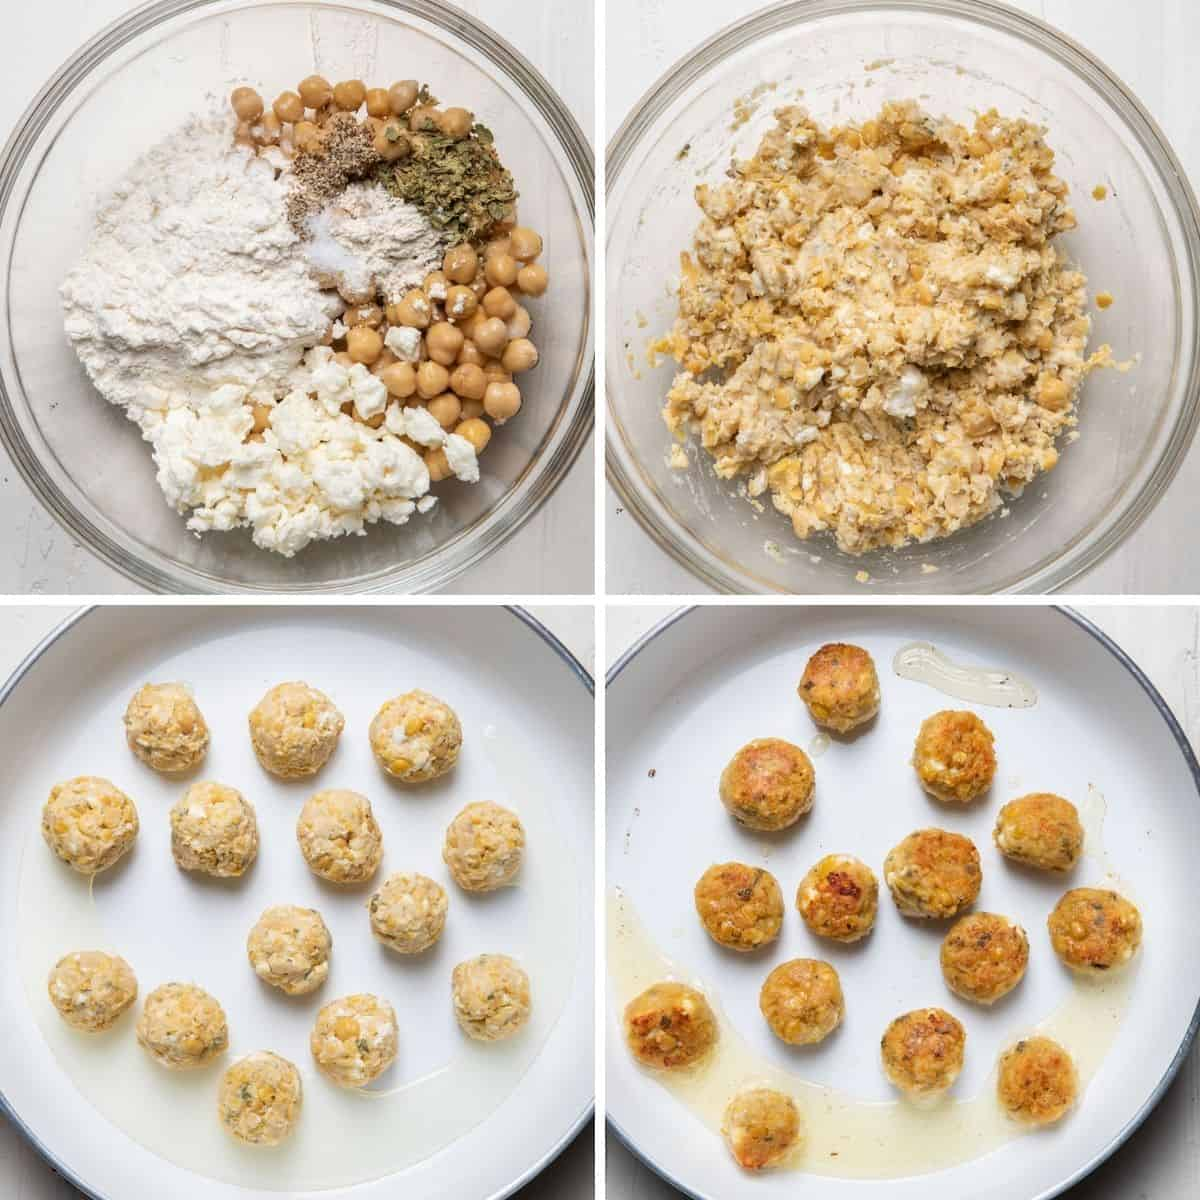 4 image collage to show the patty mixture in bowl before and after mixing, then the chickpea bites in the pan before and after cooking